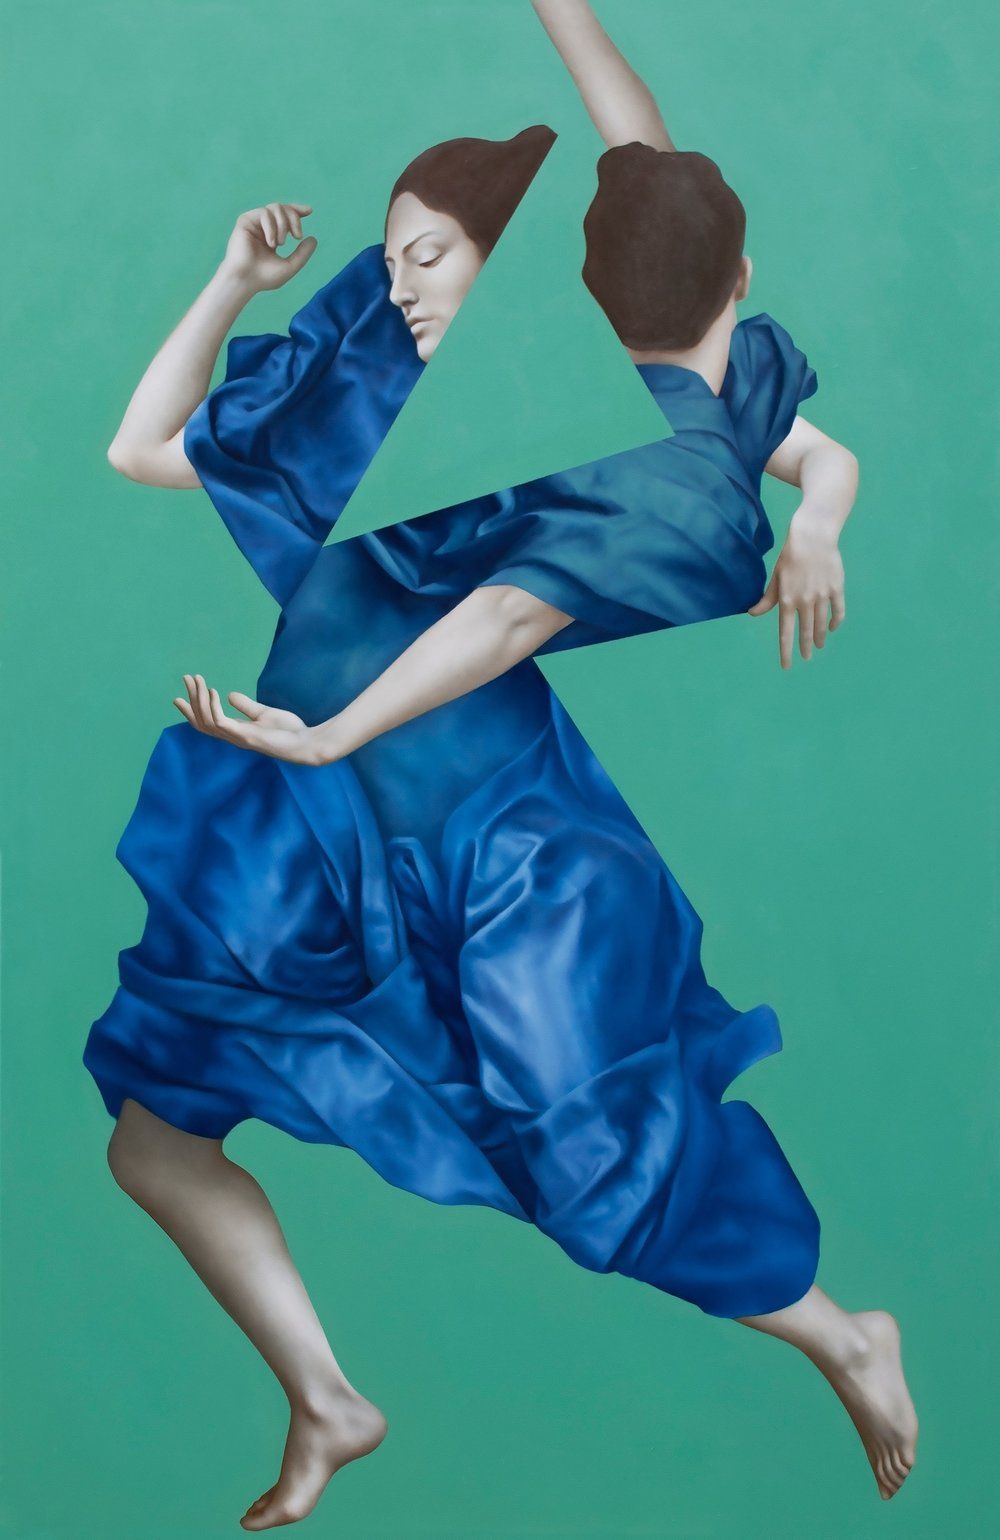 Hekate Green, oil on canvas, 170x110cm, 2016